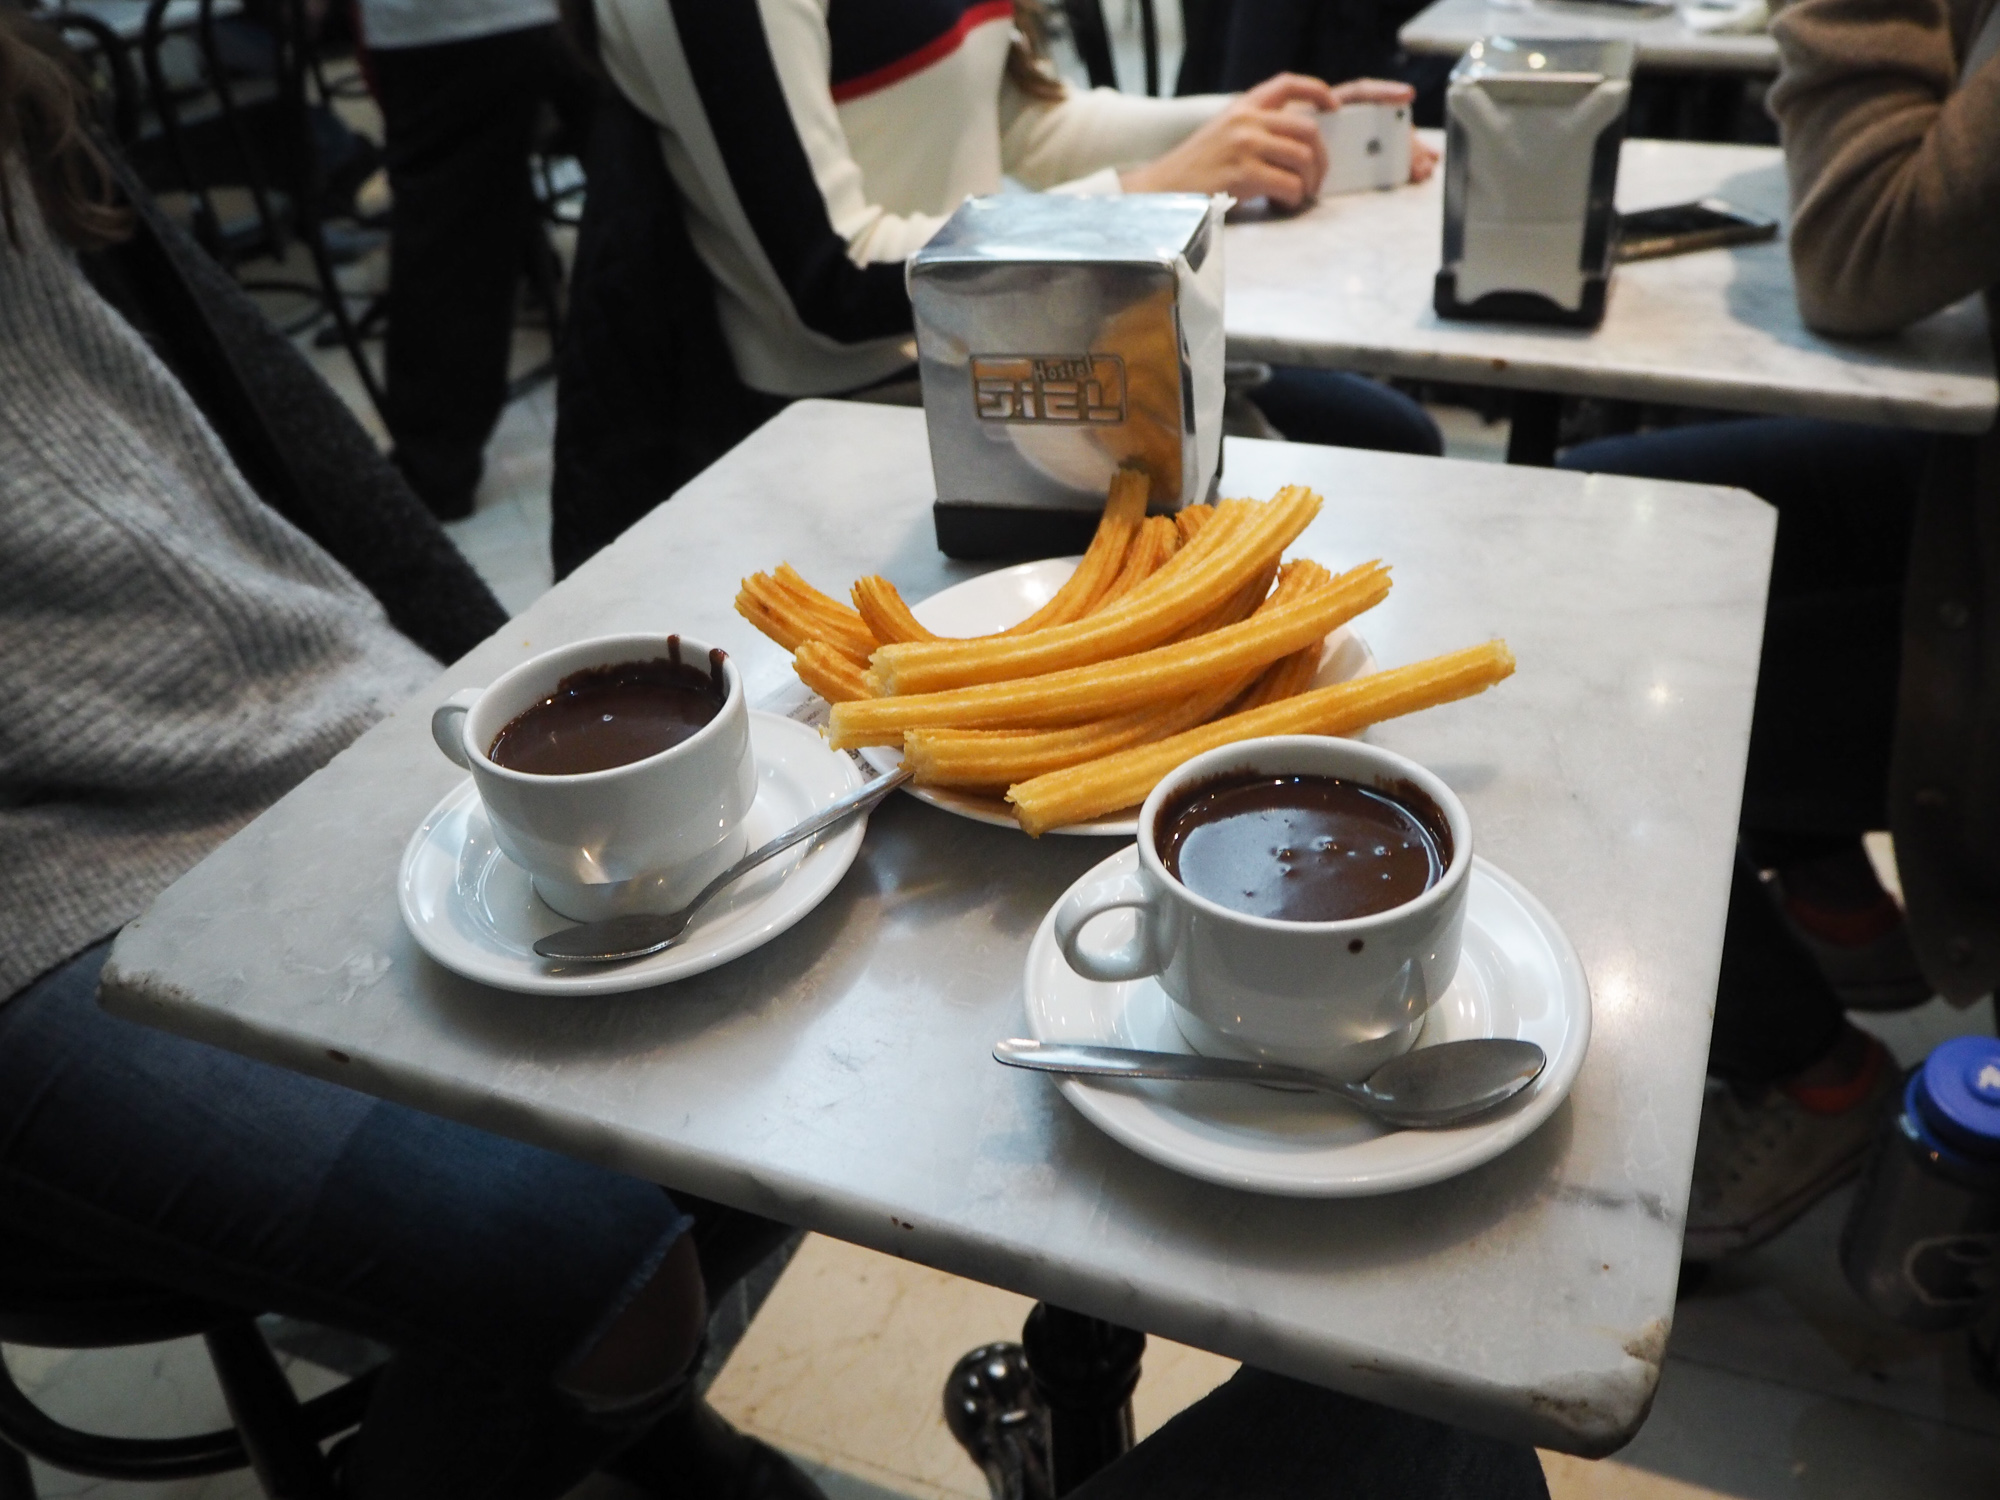 Churros at the Chocolatería San Gines: Don't drink the super rich chocolate. Just dip the churros. One portion of 6 churros and one chocolate (4 Euros)are enough for two